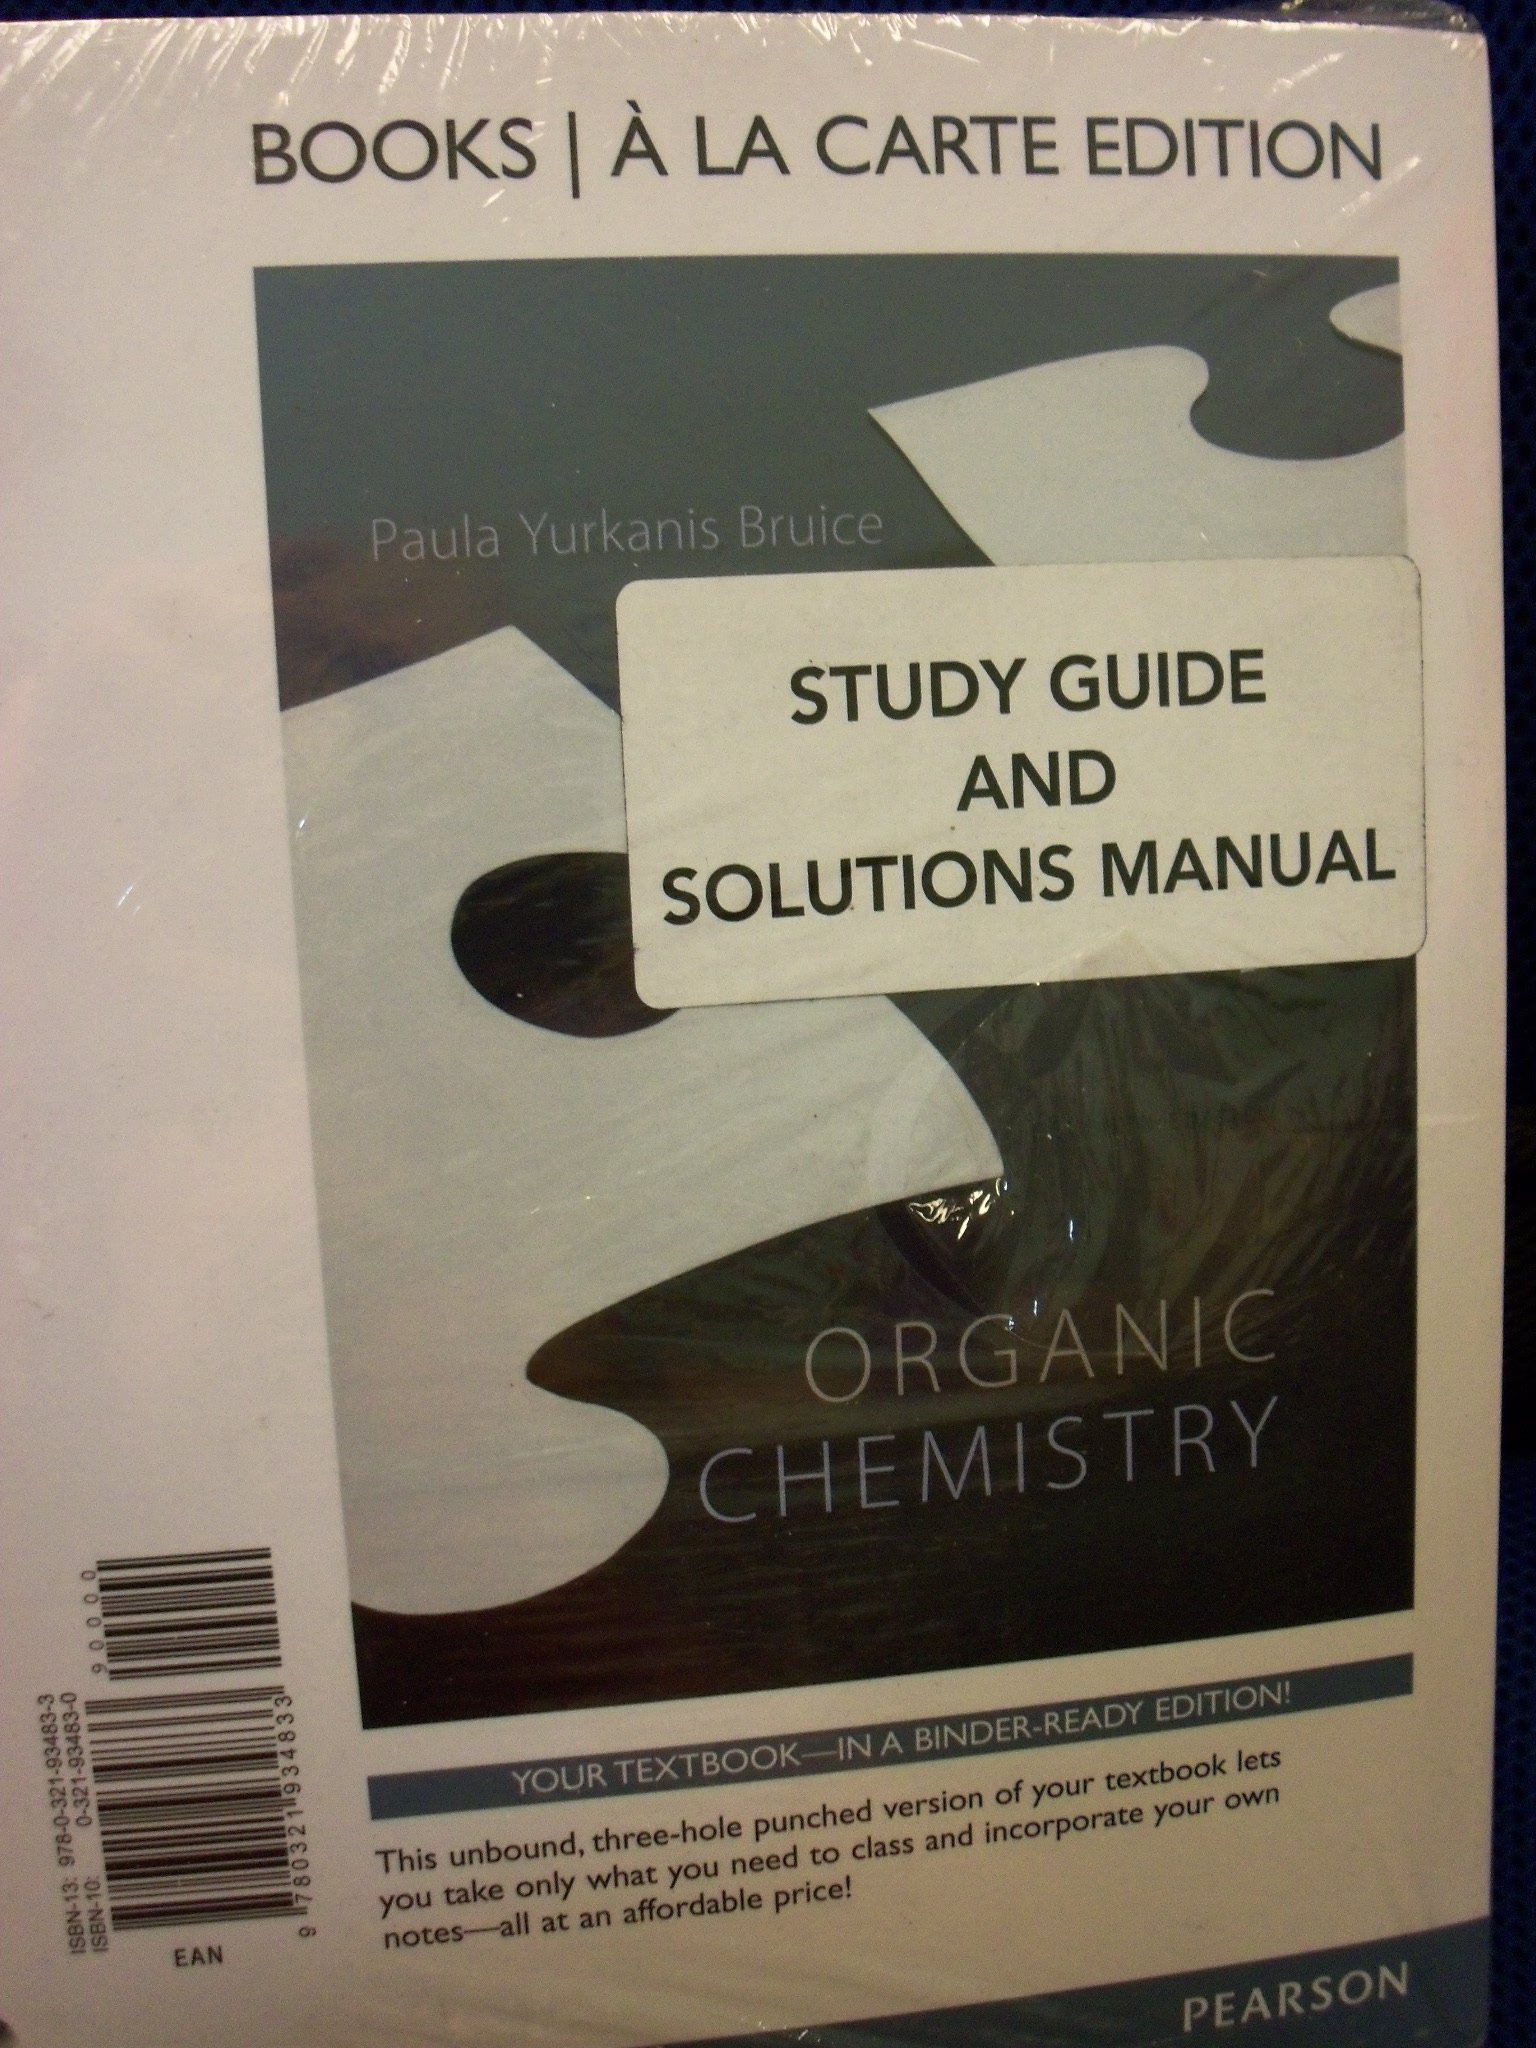 Organic Chemistry 7th Ed [Hardcover] + Study Guide & Solutions Manual  [Loose Leaf] (Bundle): Paula Y. Bruice: 9781269217194: Amazon.com: Books